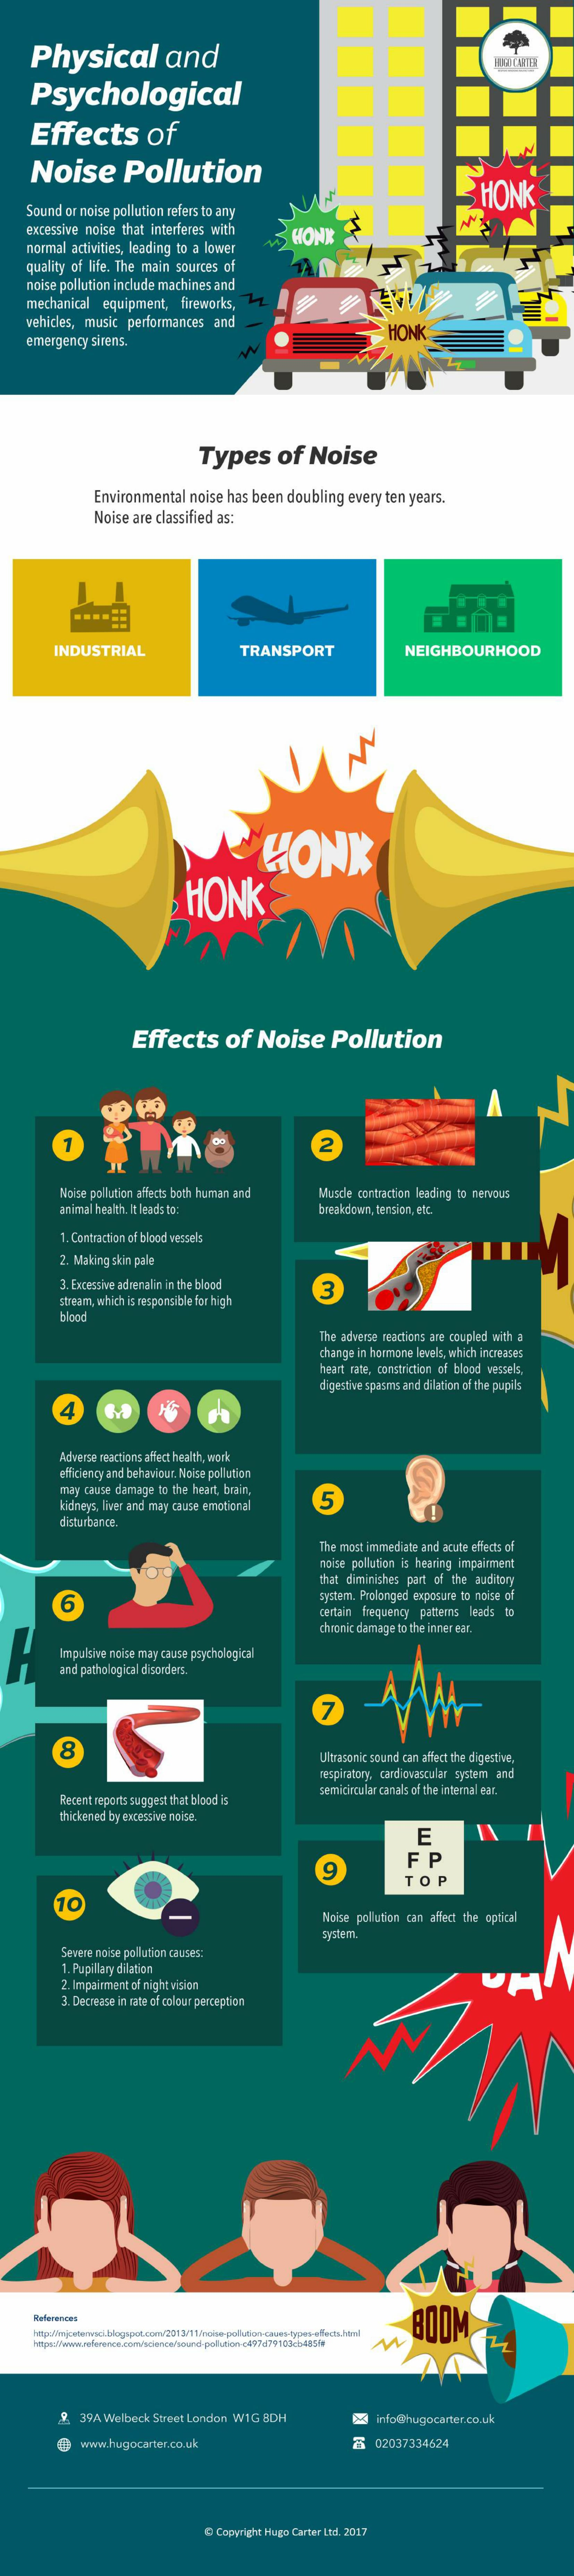 Pin by Hugo Carter on Windows | Noise pollution, Air